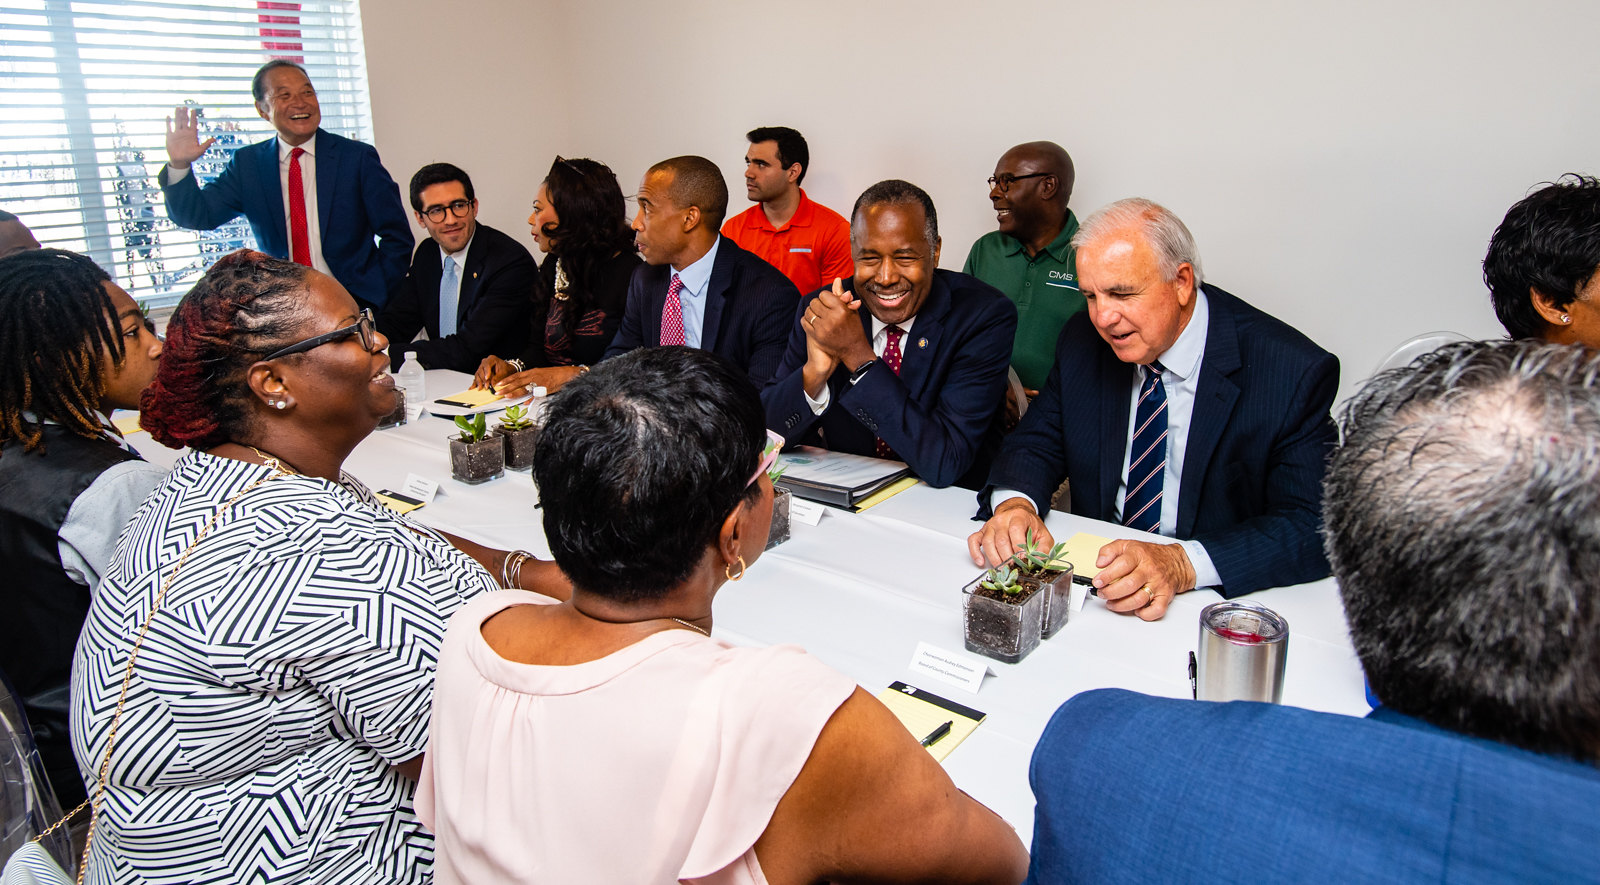 Secretary Carson, Executive Director Turner, and Miami-Dade County Mayor Carlos Gimenez meet with Liberty Square residents during an Opportunity Zones event in Miami, FL